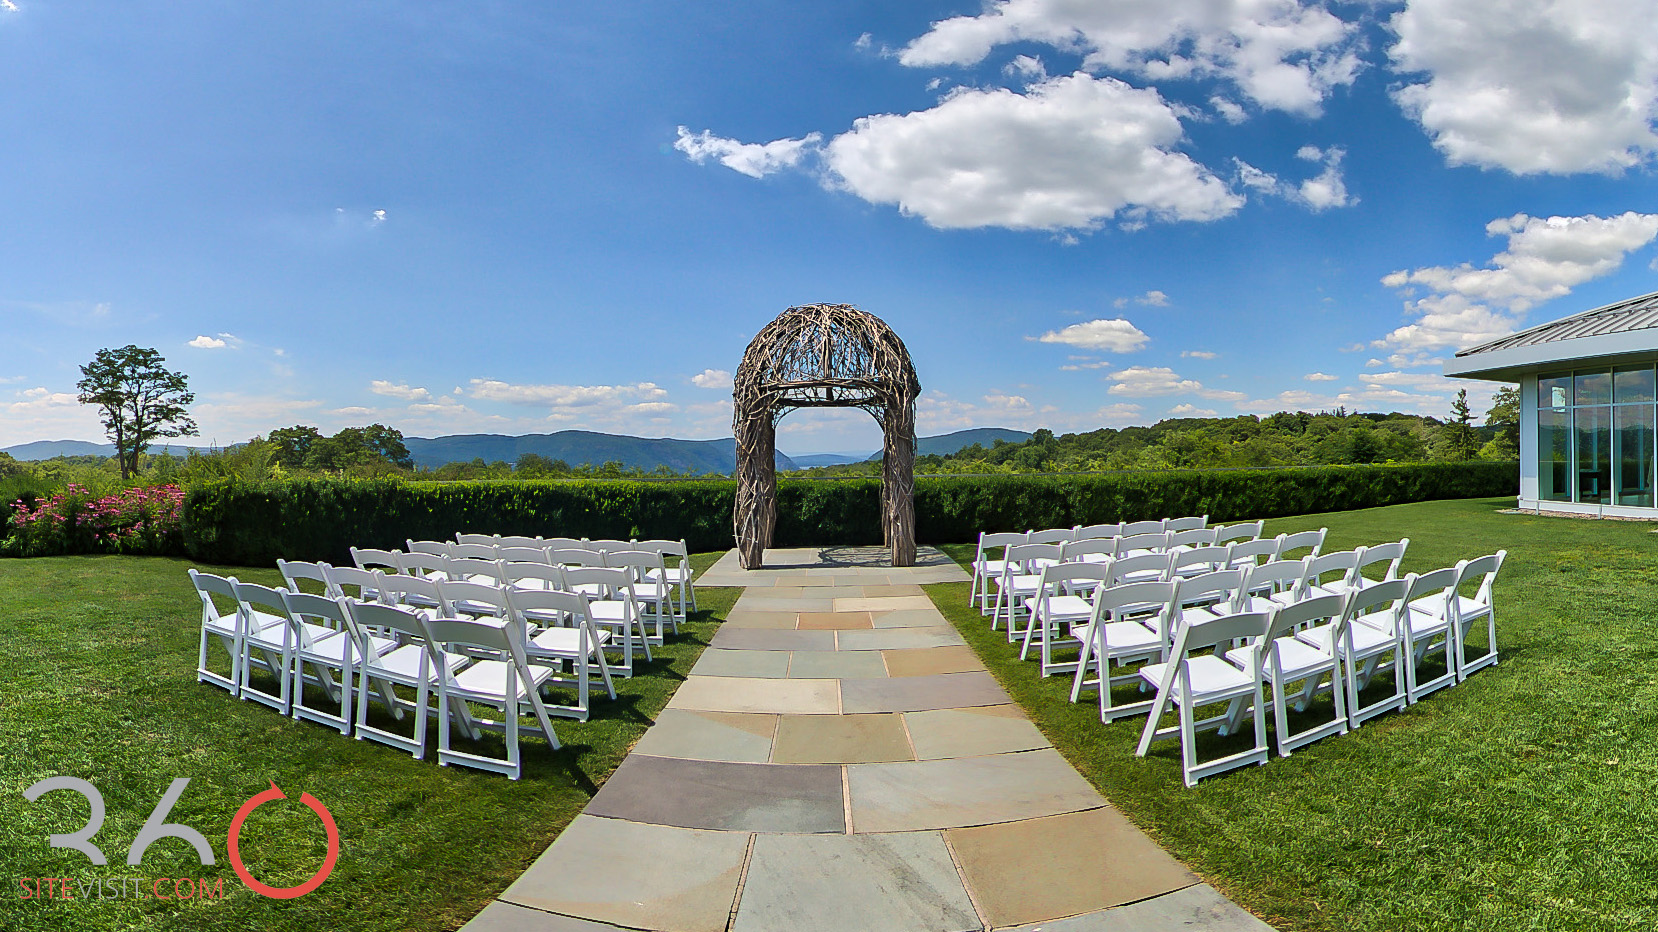 29-The Garrison wedding and event venue Garrison, NY virtual tour by 360sitevisit